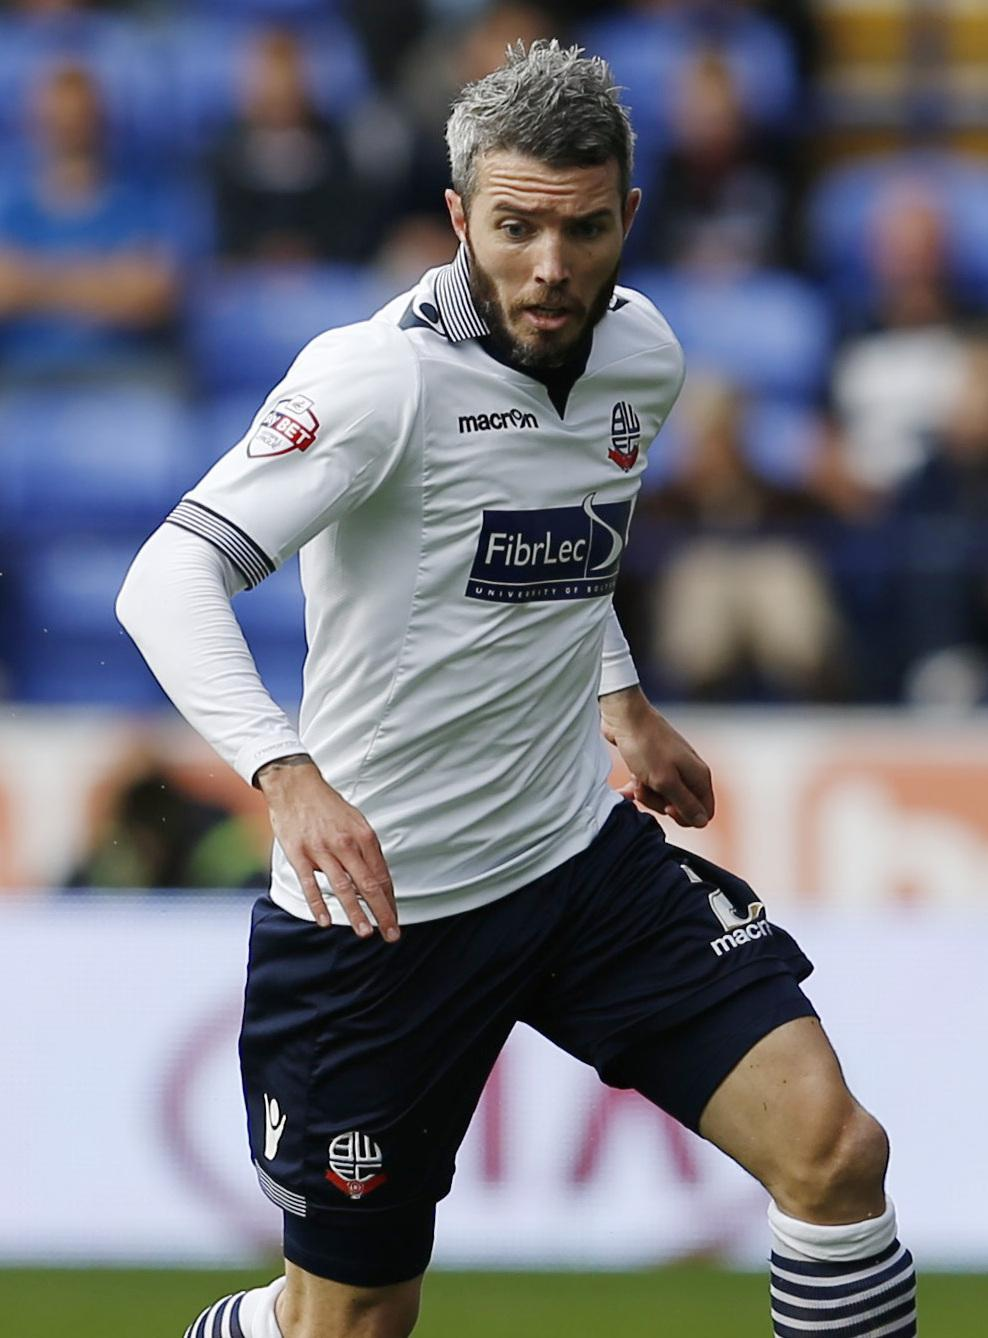 Bolton Wanderers confirm the worst on Kevin McNaughton and